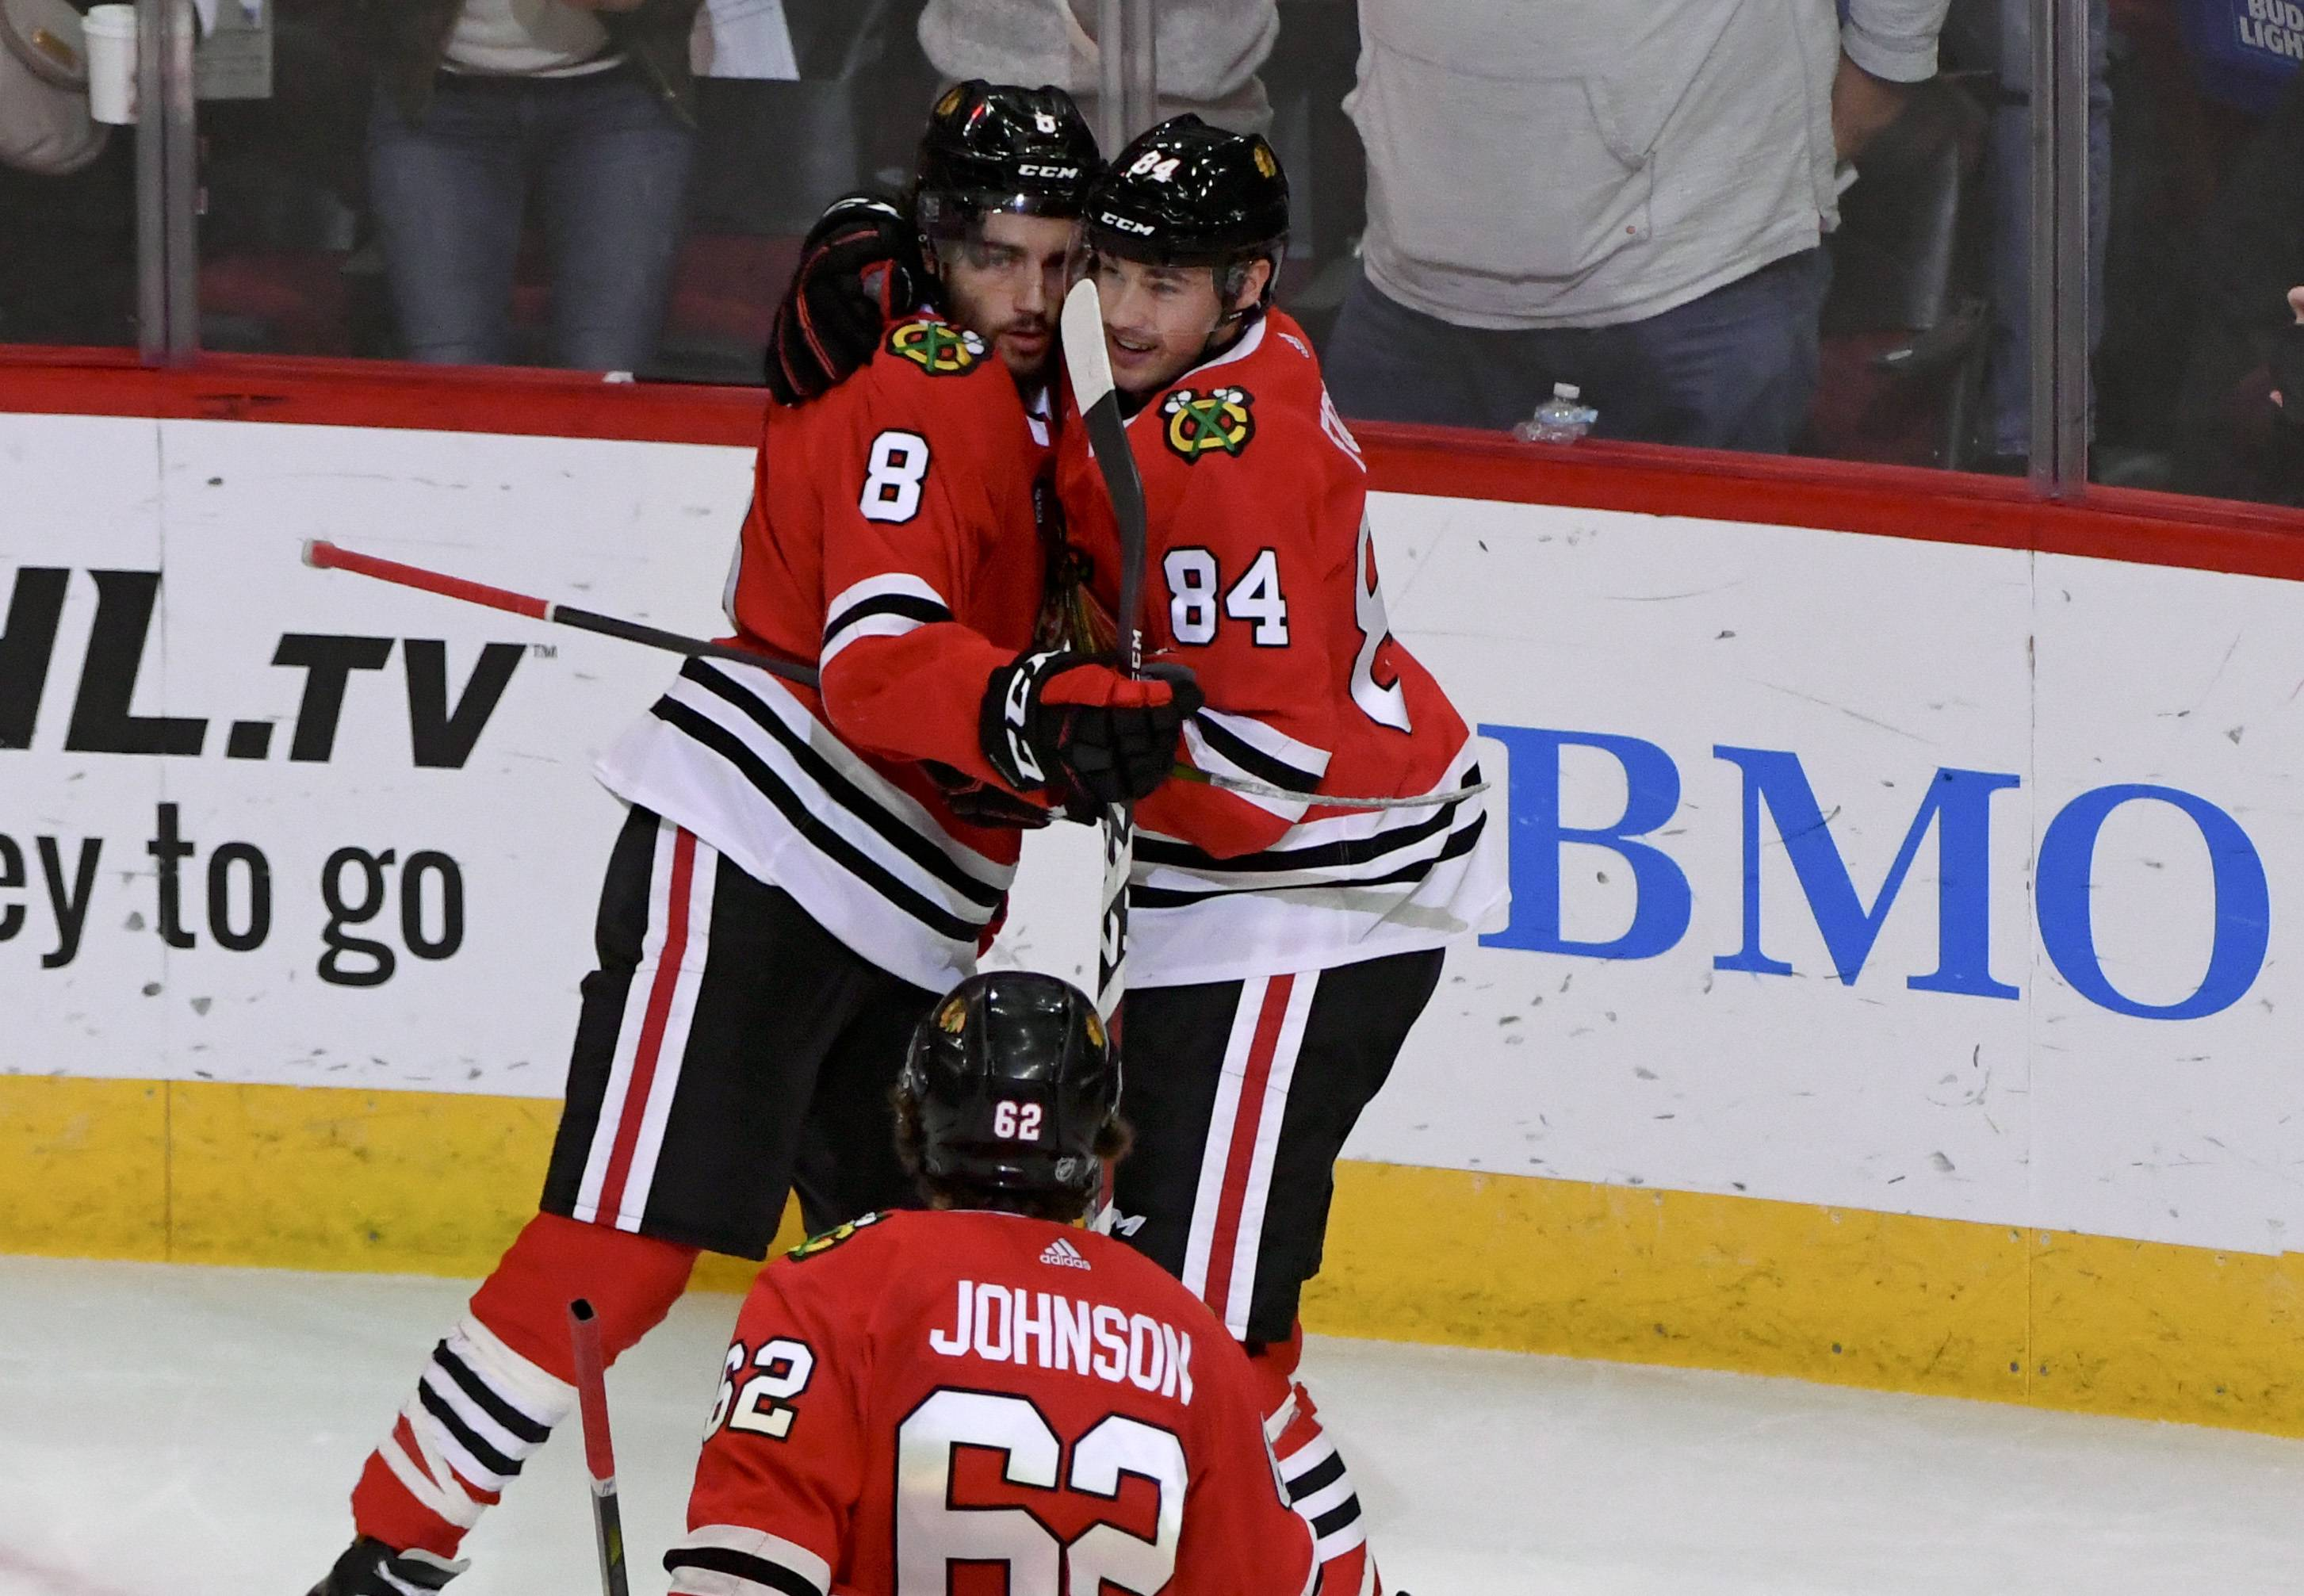 Chicago Blackhawks center Nick Schmaltz (8) hugs left wing Alexandre Fortin (84) after Fortin scored a goal against the New York Rangers during the second period of an NHL hockey game on Thursday Oct. 25, 2018, in Chicago.